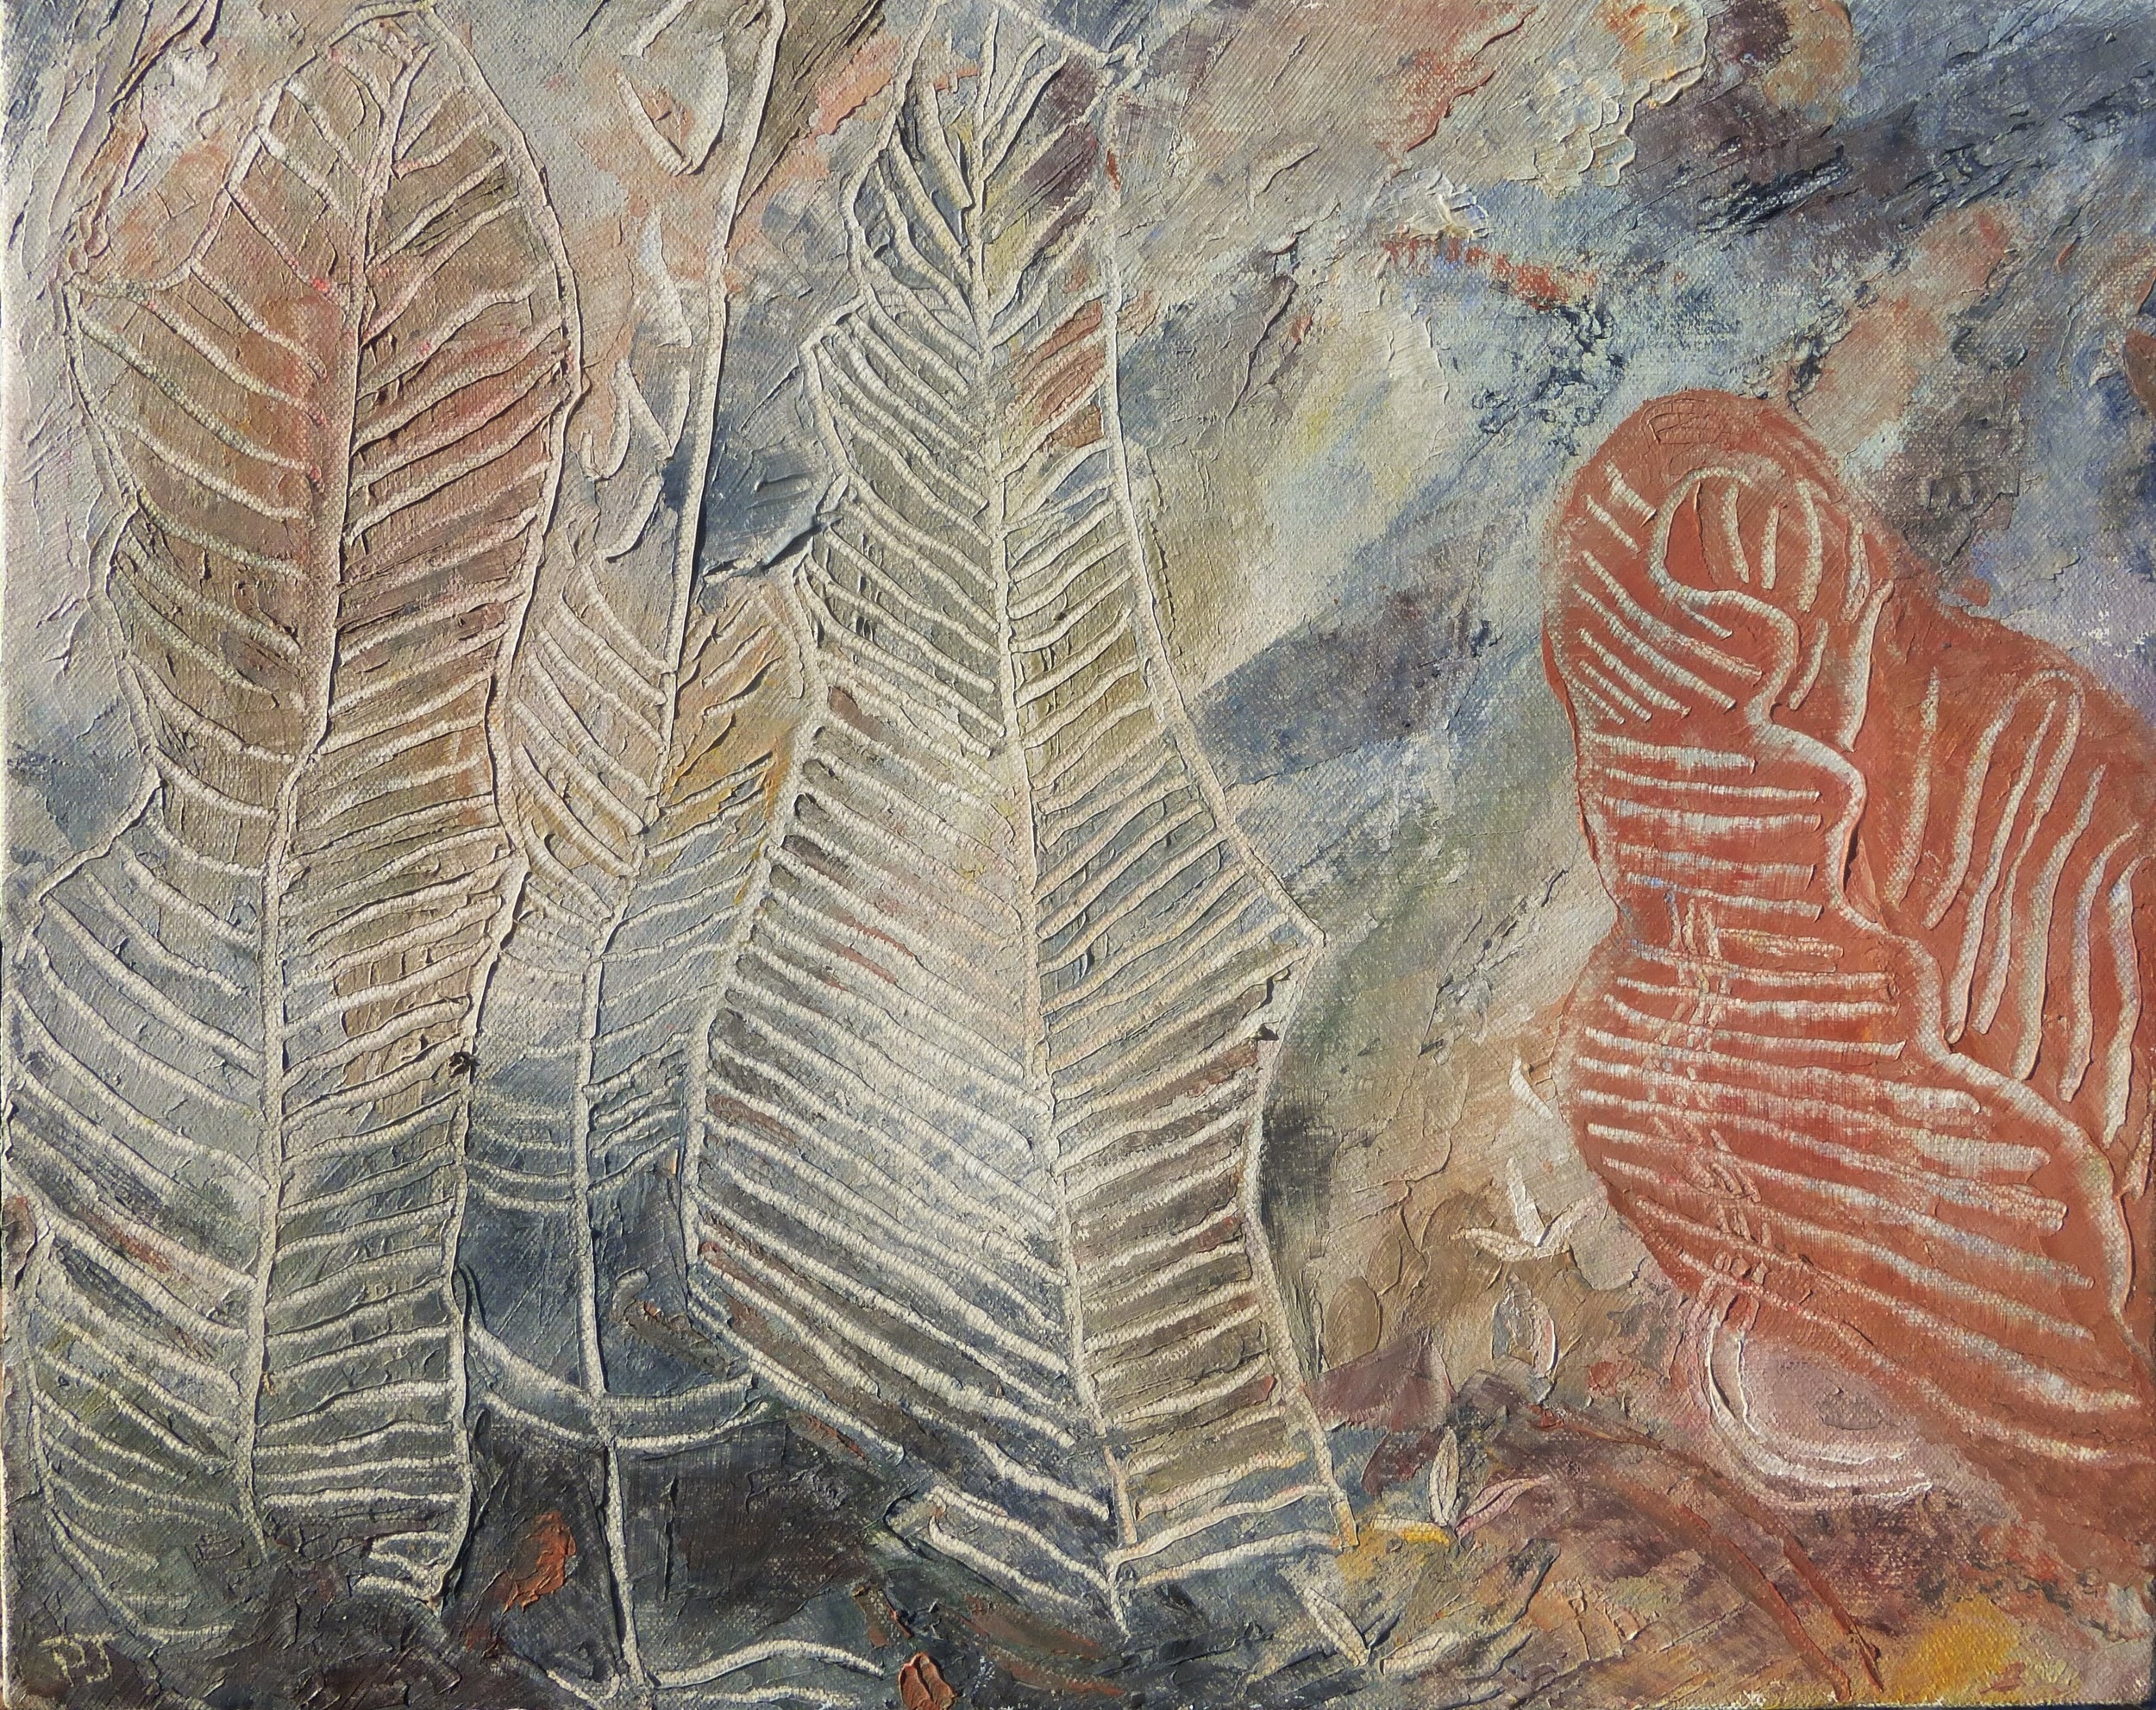 Aboriginal rock painting 3, oil on canvas